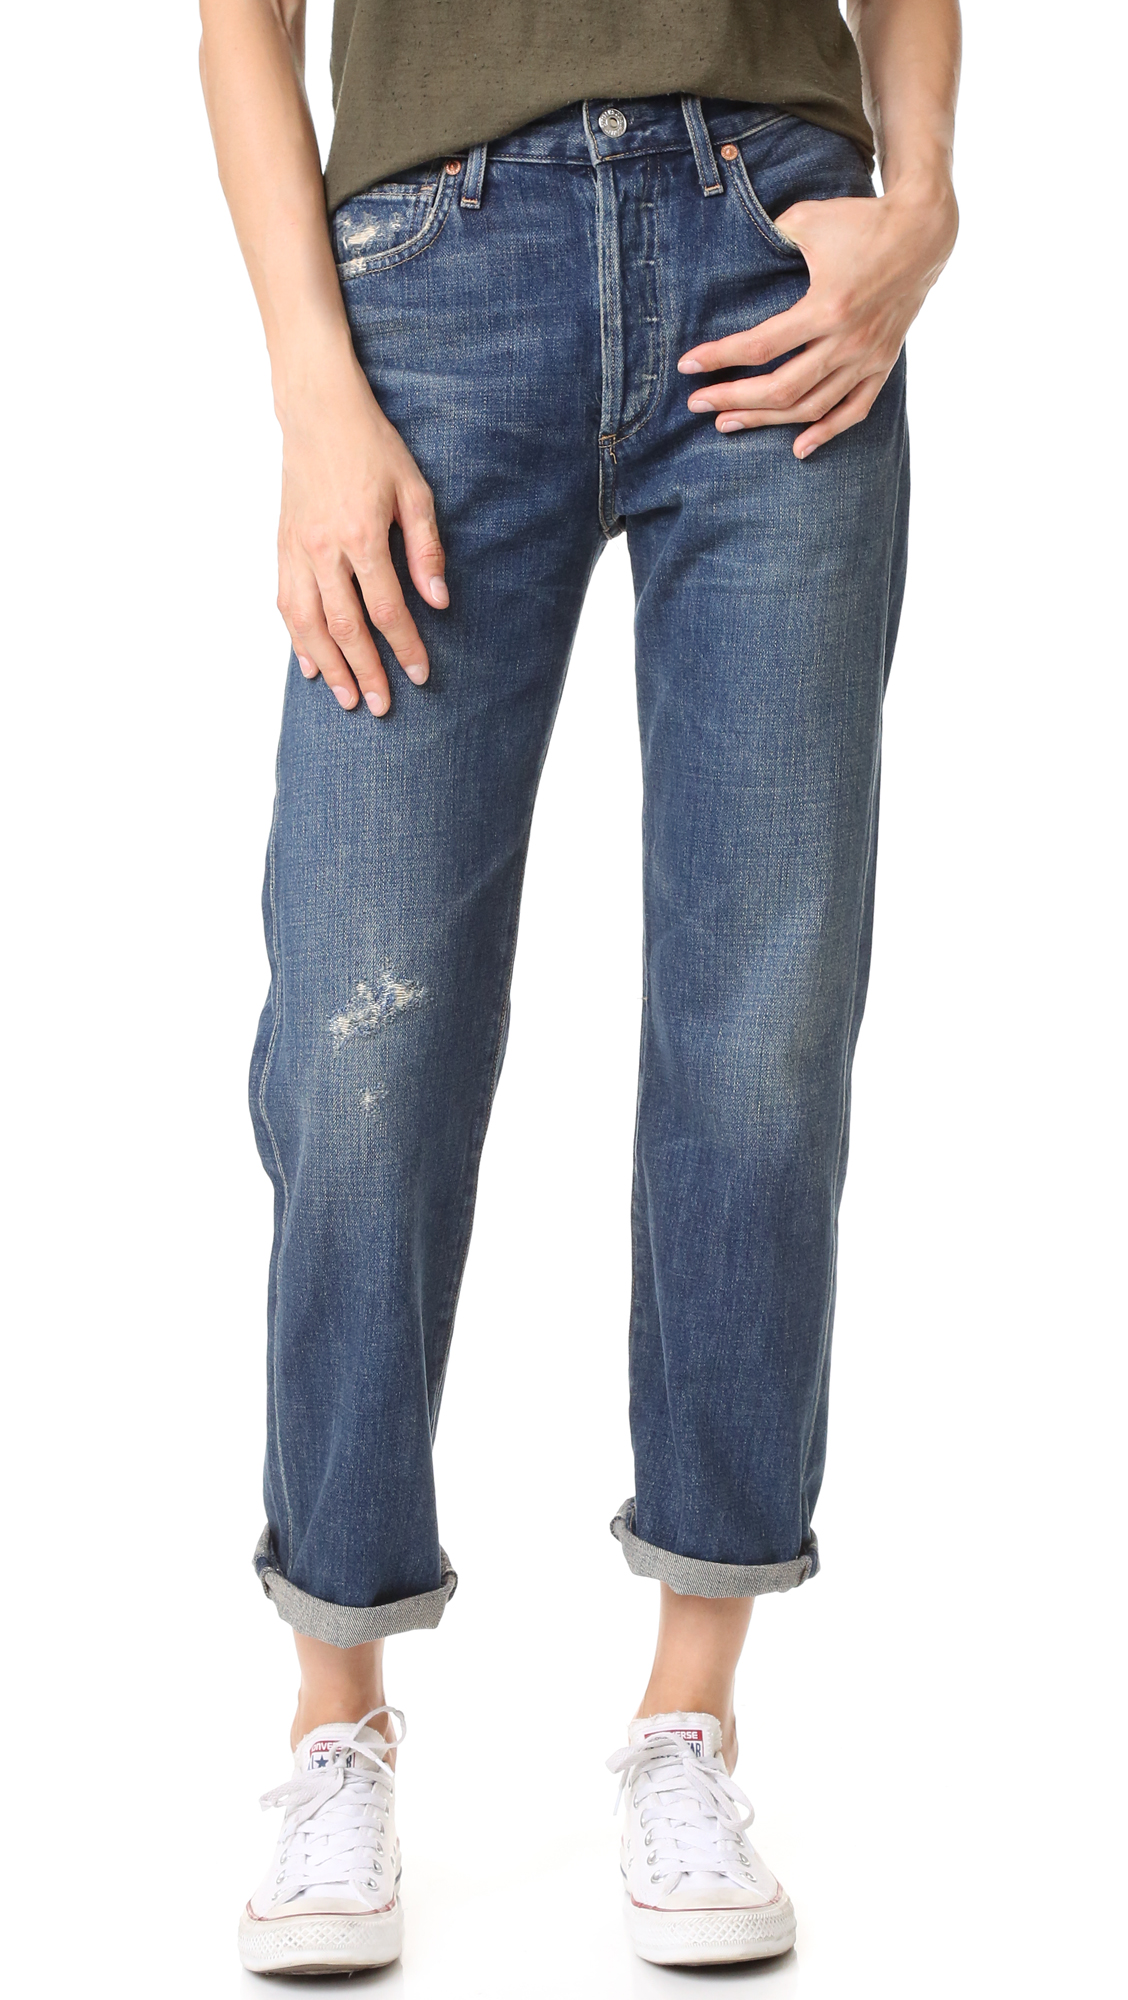 Citizens Of Humanity Cora High Rise Relaxed Crop Jeans - Wiltern at Shopbop